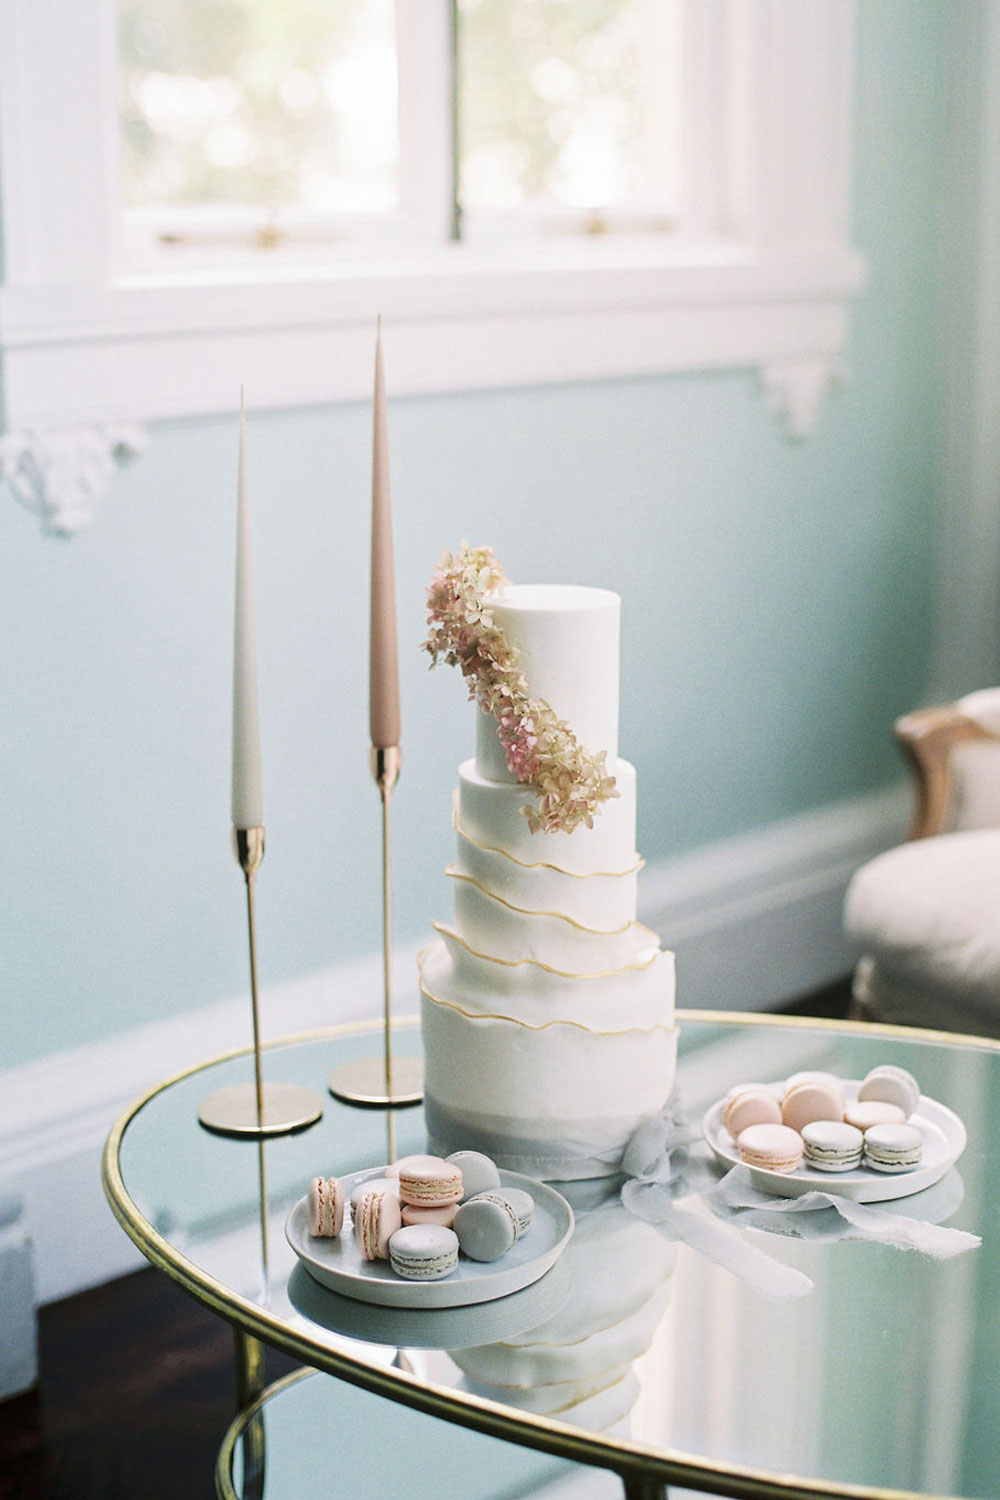 Micro Wedding, Micro Weddings, Micro Wedding Inspiration, Wedding Inspiration, Styled Shoot, Wedding Styled Shoot, Wedding Style, Wedding Inspo, Intimate Wedding, Small Wedding, Small Intimate Wedding